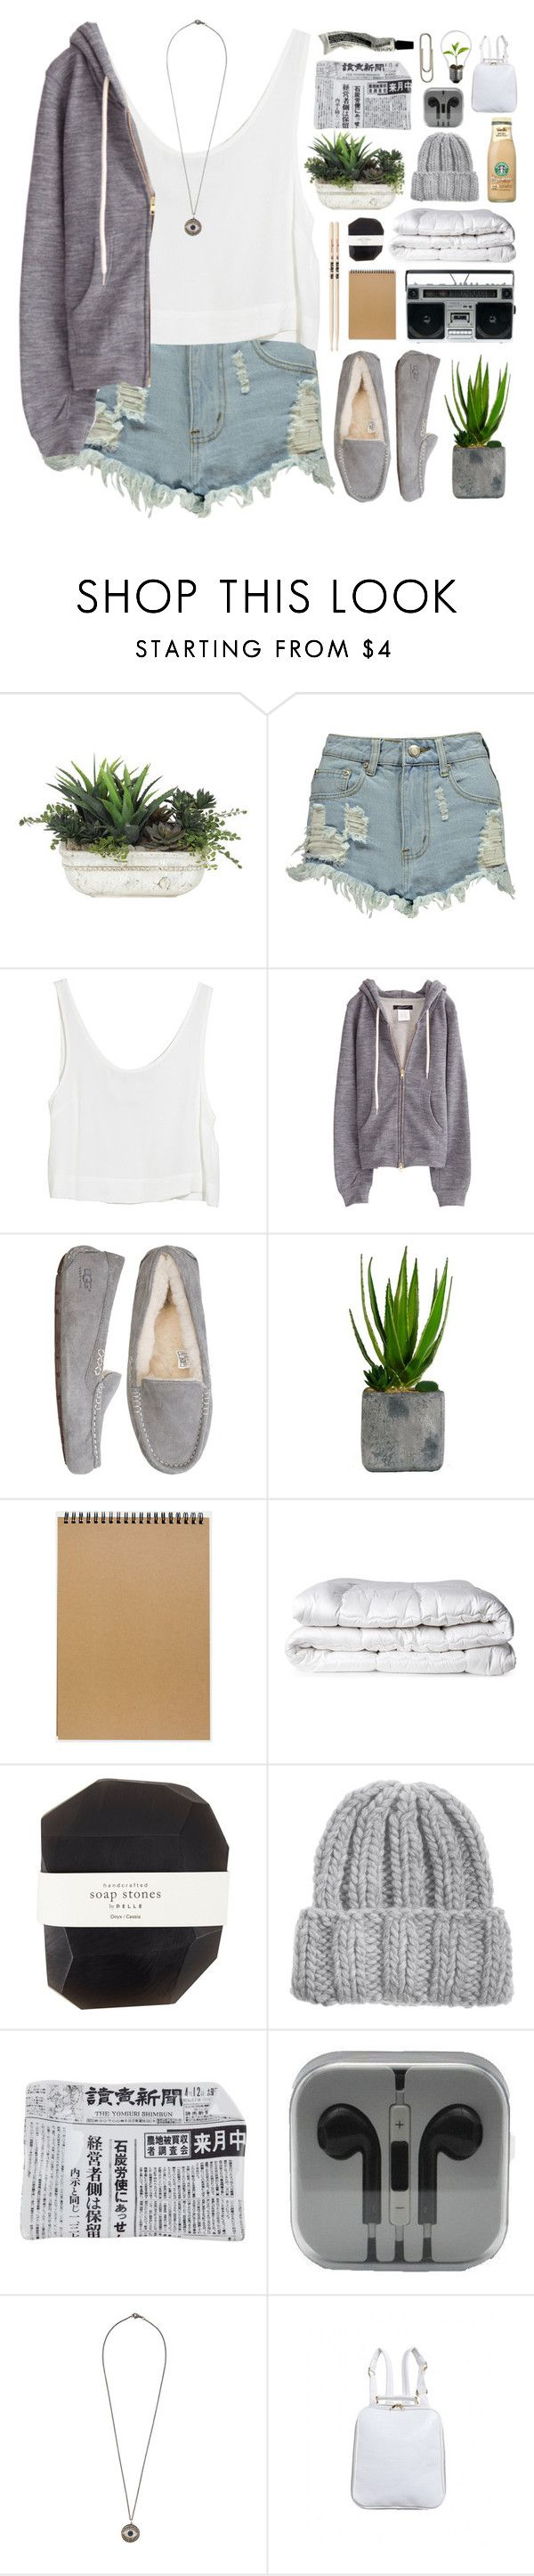 """lazy day"" by innesdesigns ❤ liked on Polyvore featuring Lux-Art Silks, Boohoo, MINKPINK, UGG Australia, Laura Ashley, Muji, Firth, Brinkhaus, Pelle and KISS by Fiona Bennett"